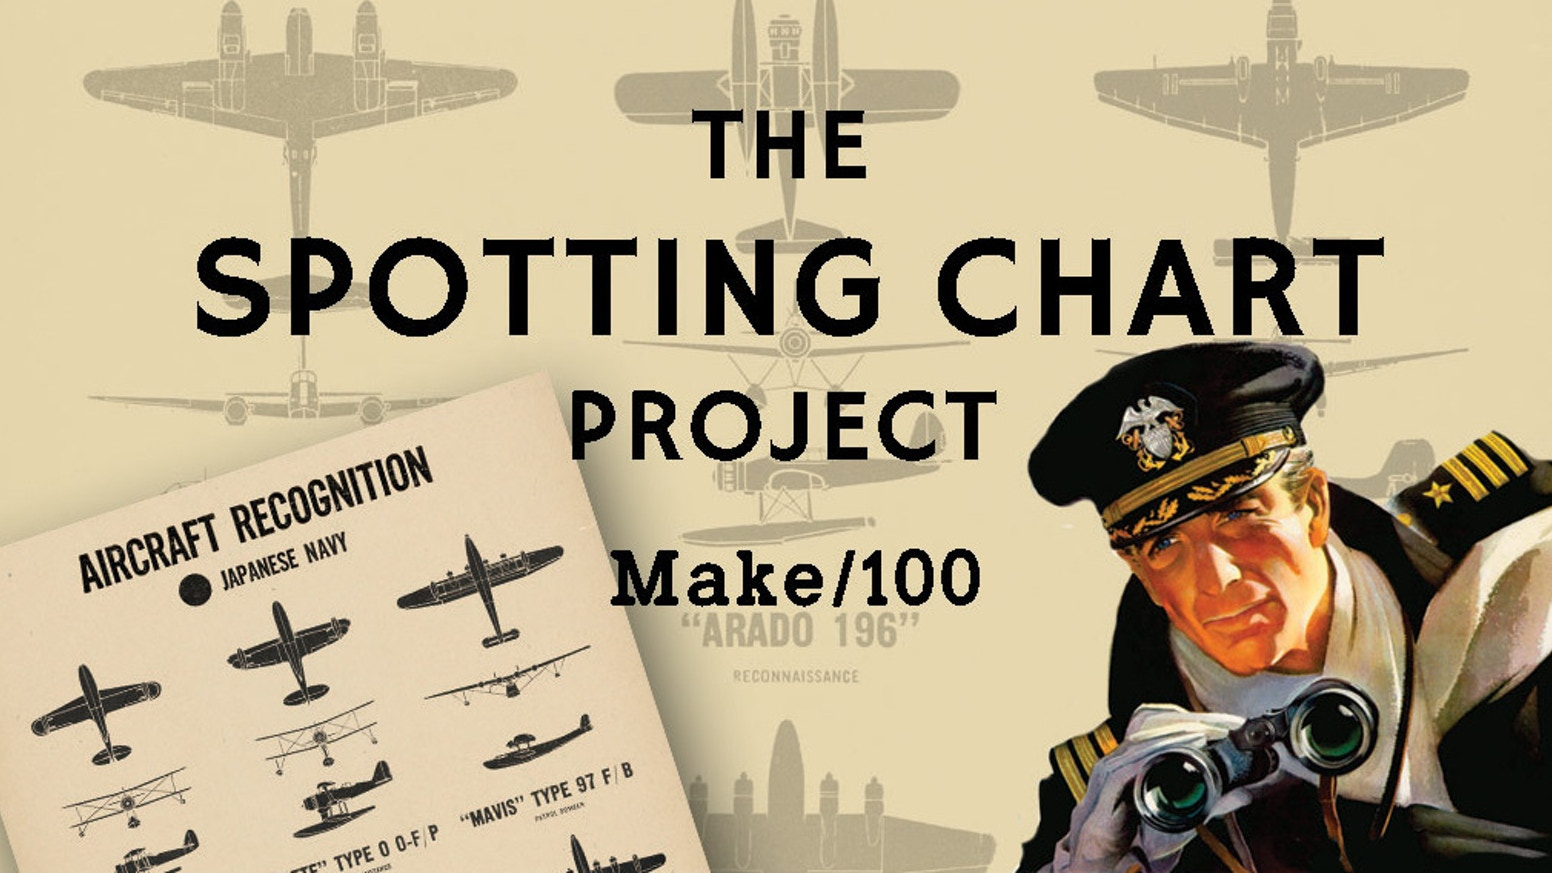 A series of WWII plane spotting charts designed to look like they were authentic military-issued posters dating from the 1940s.